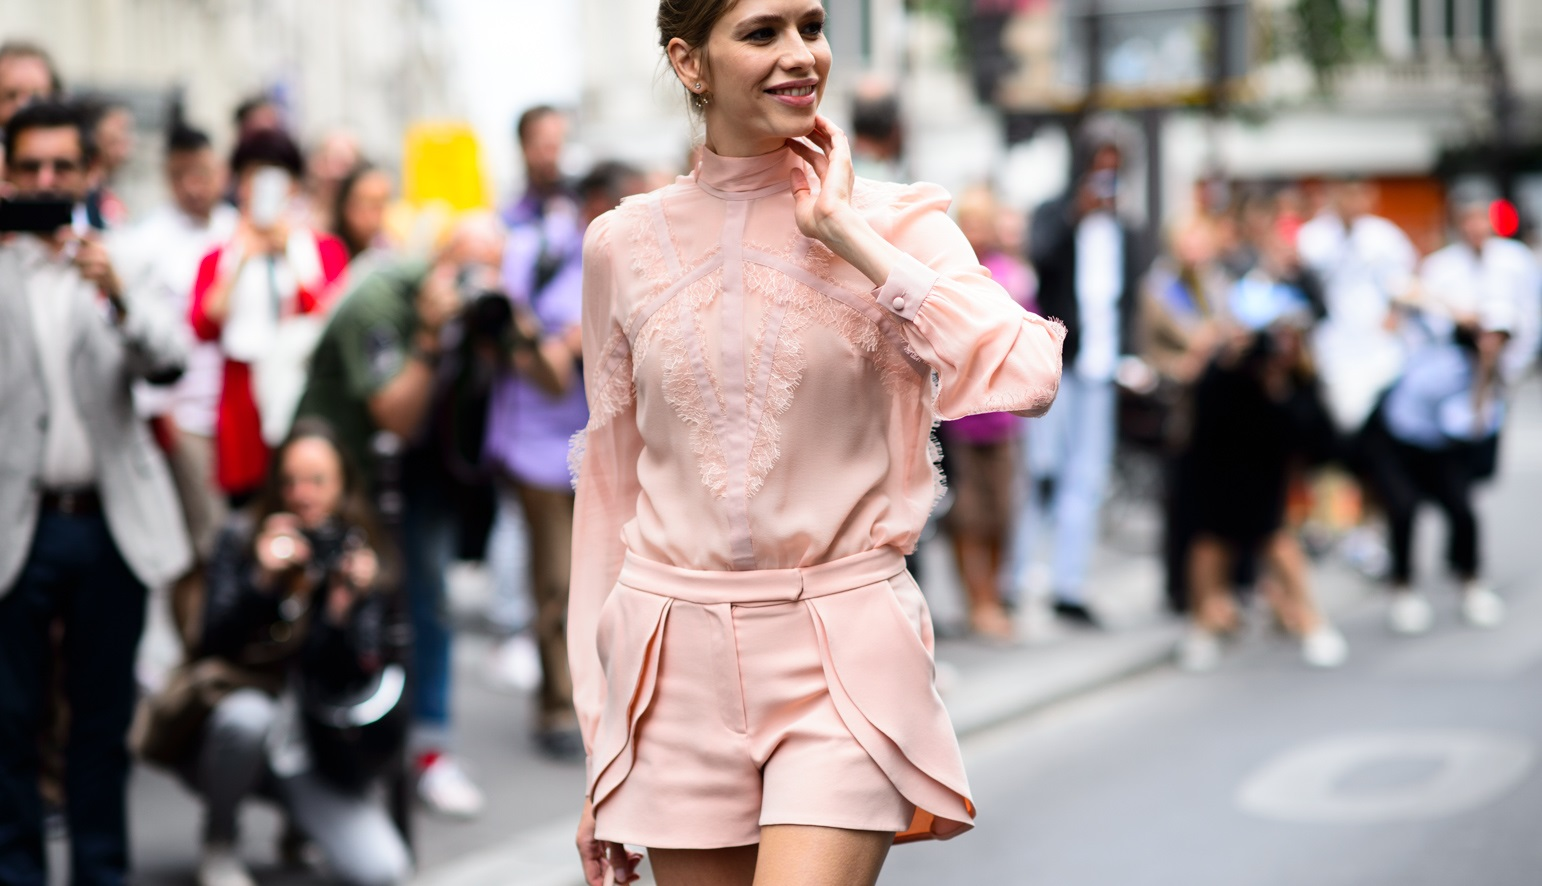 Add color to your outfit: PINK